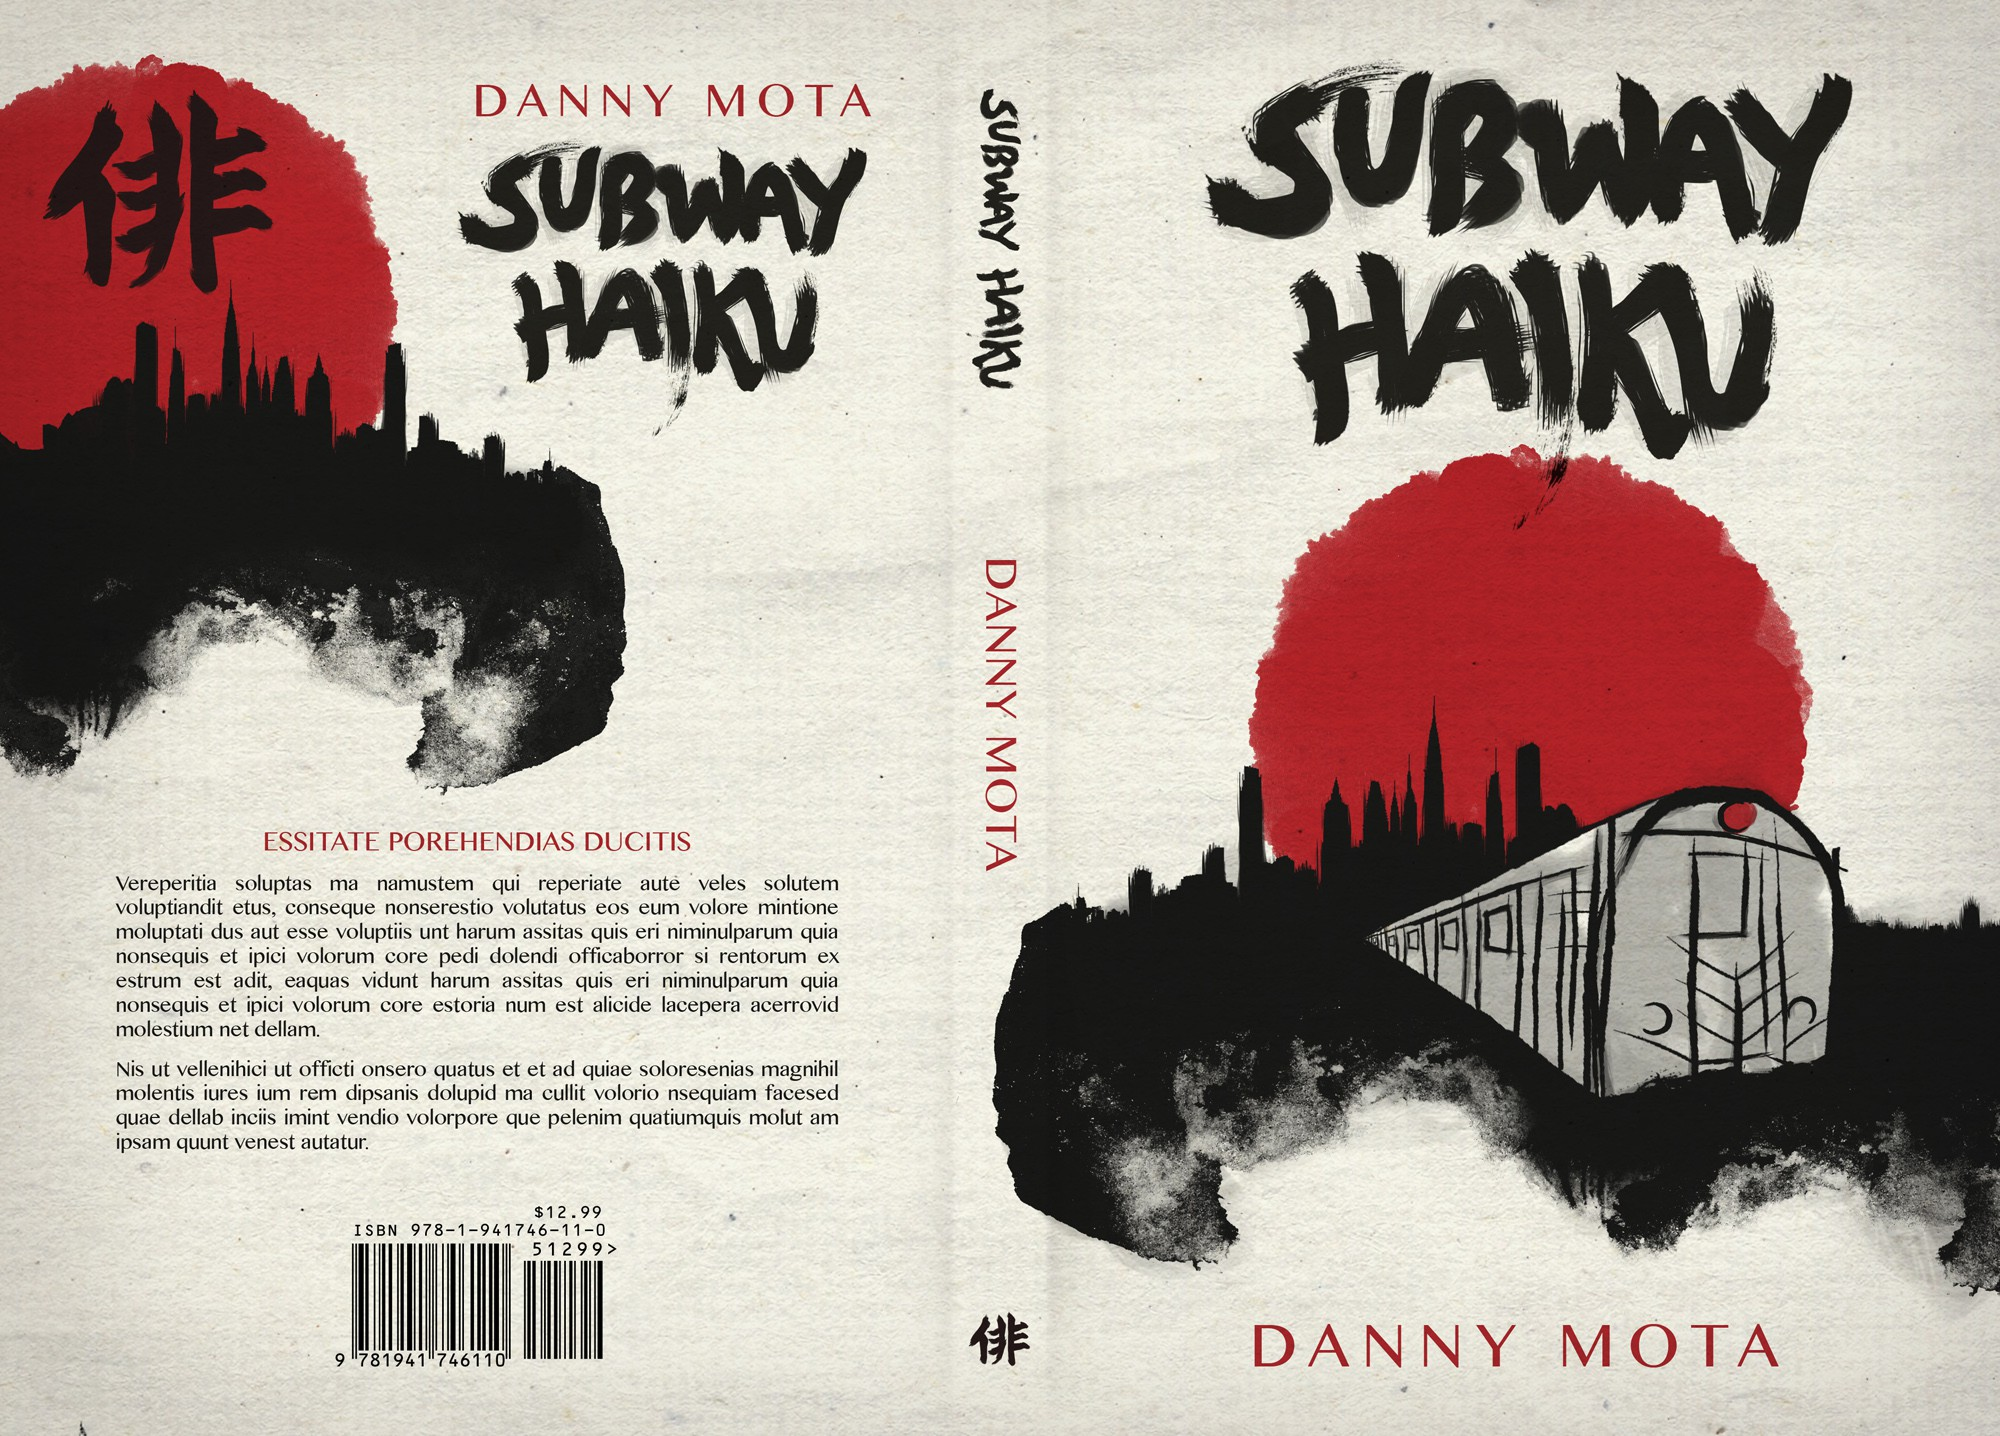 Create authentic Japanese brush-style book cover art for a cool HAIKU book